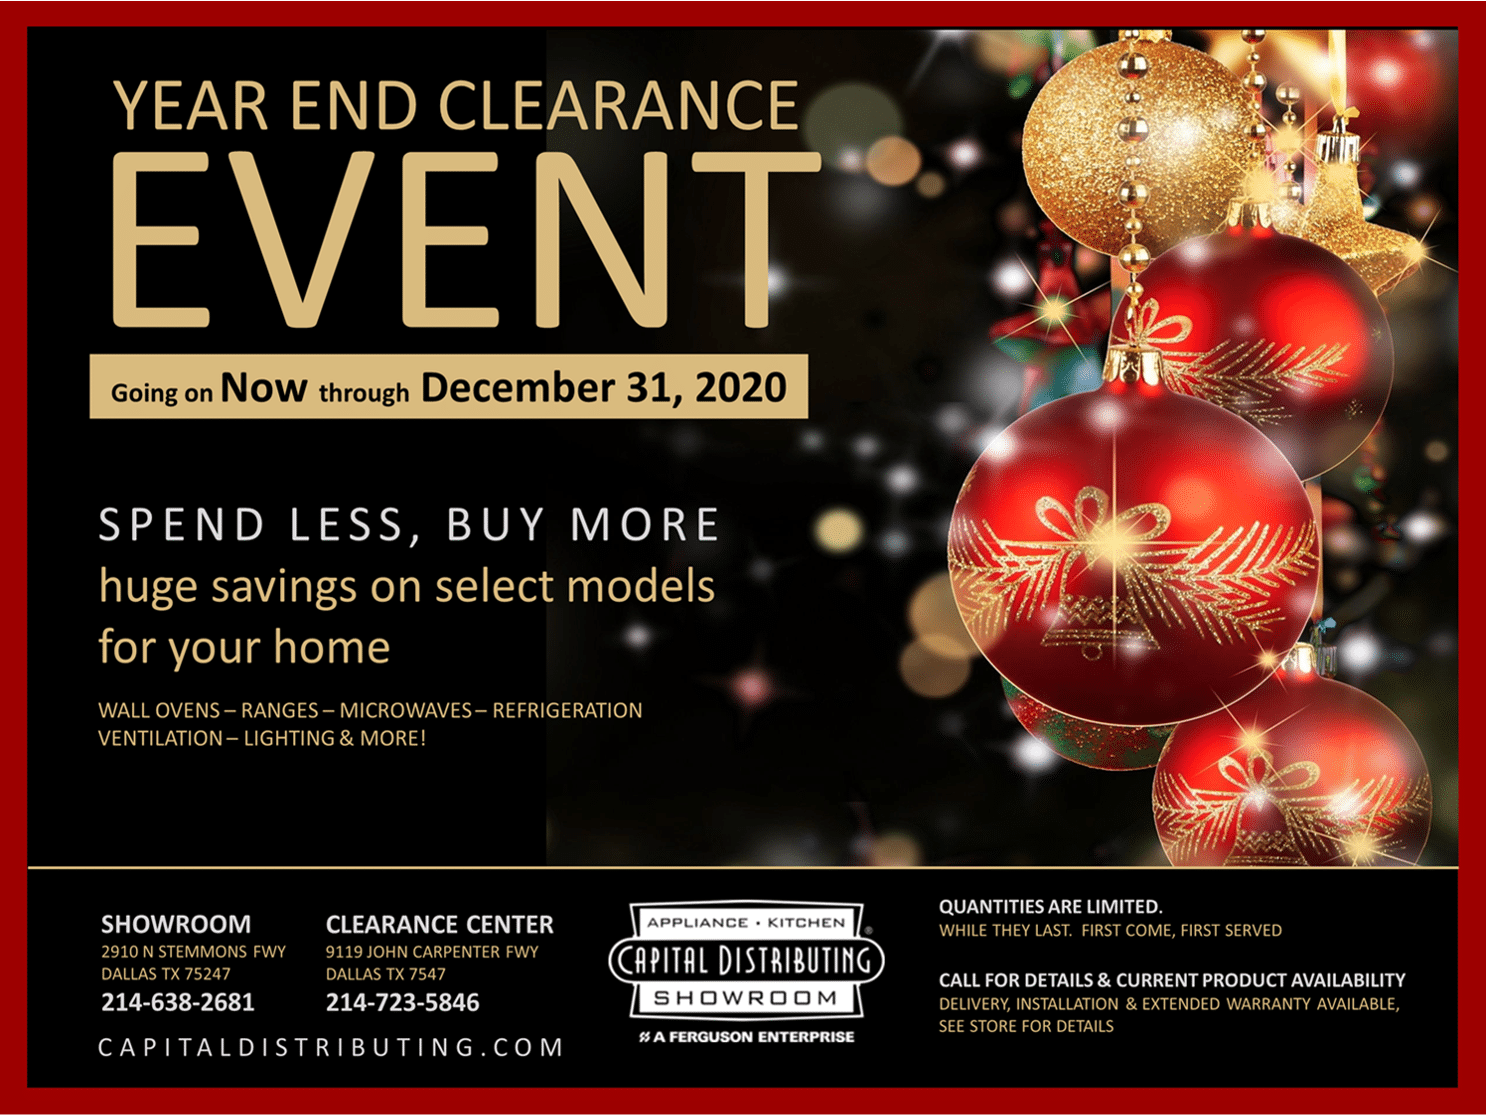 Capital Distributing | Year End Clearance Event 2020